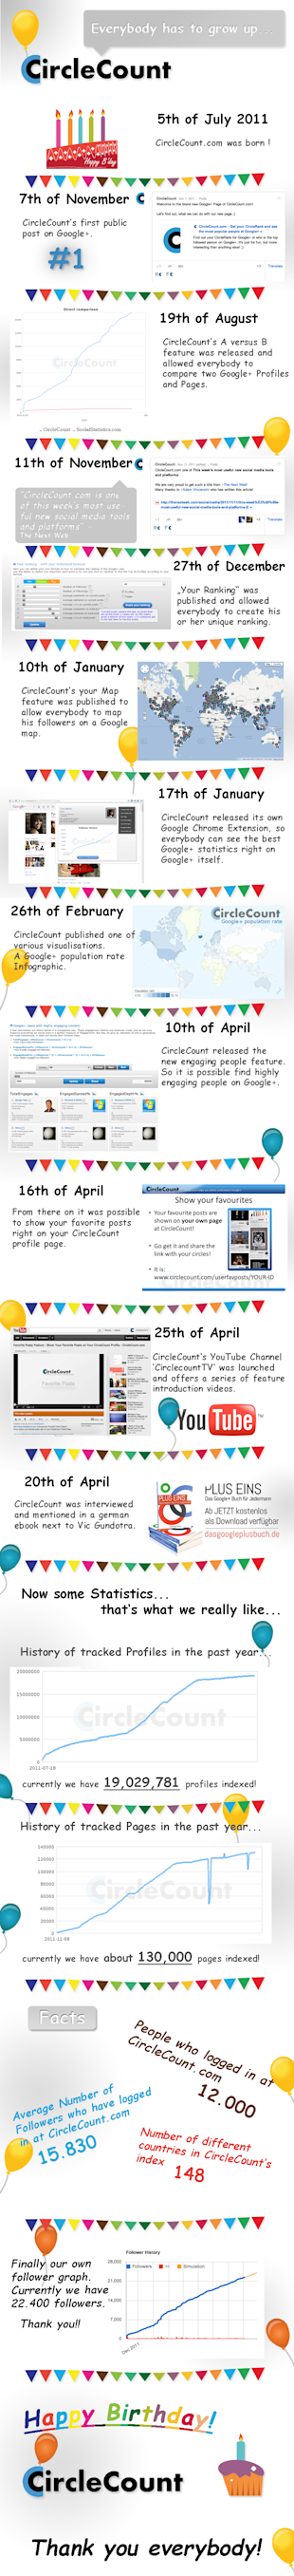 Understand and Monitor your Google+ Followers with CircleCount image CircleCount infographic